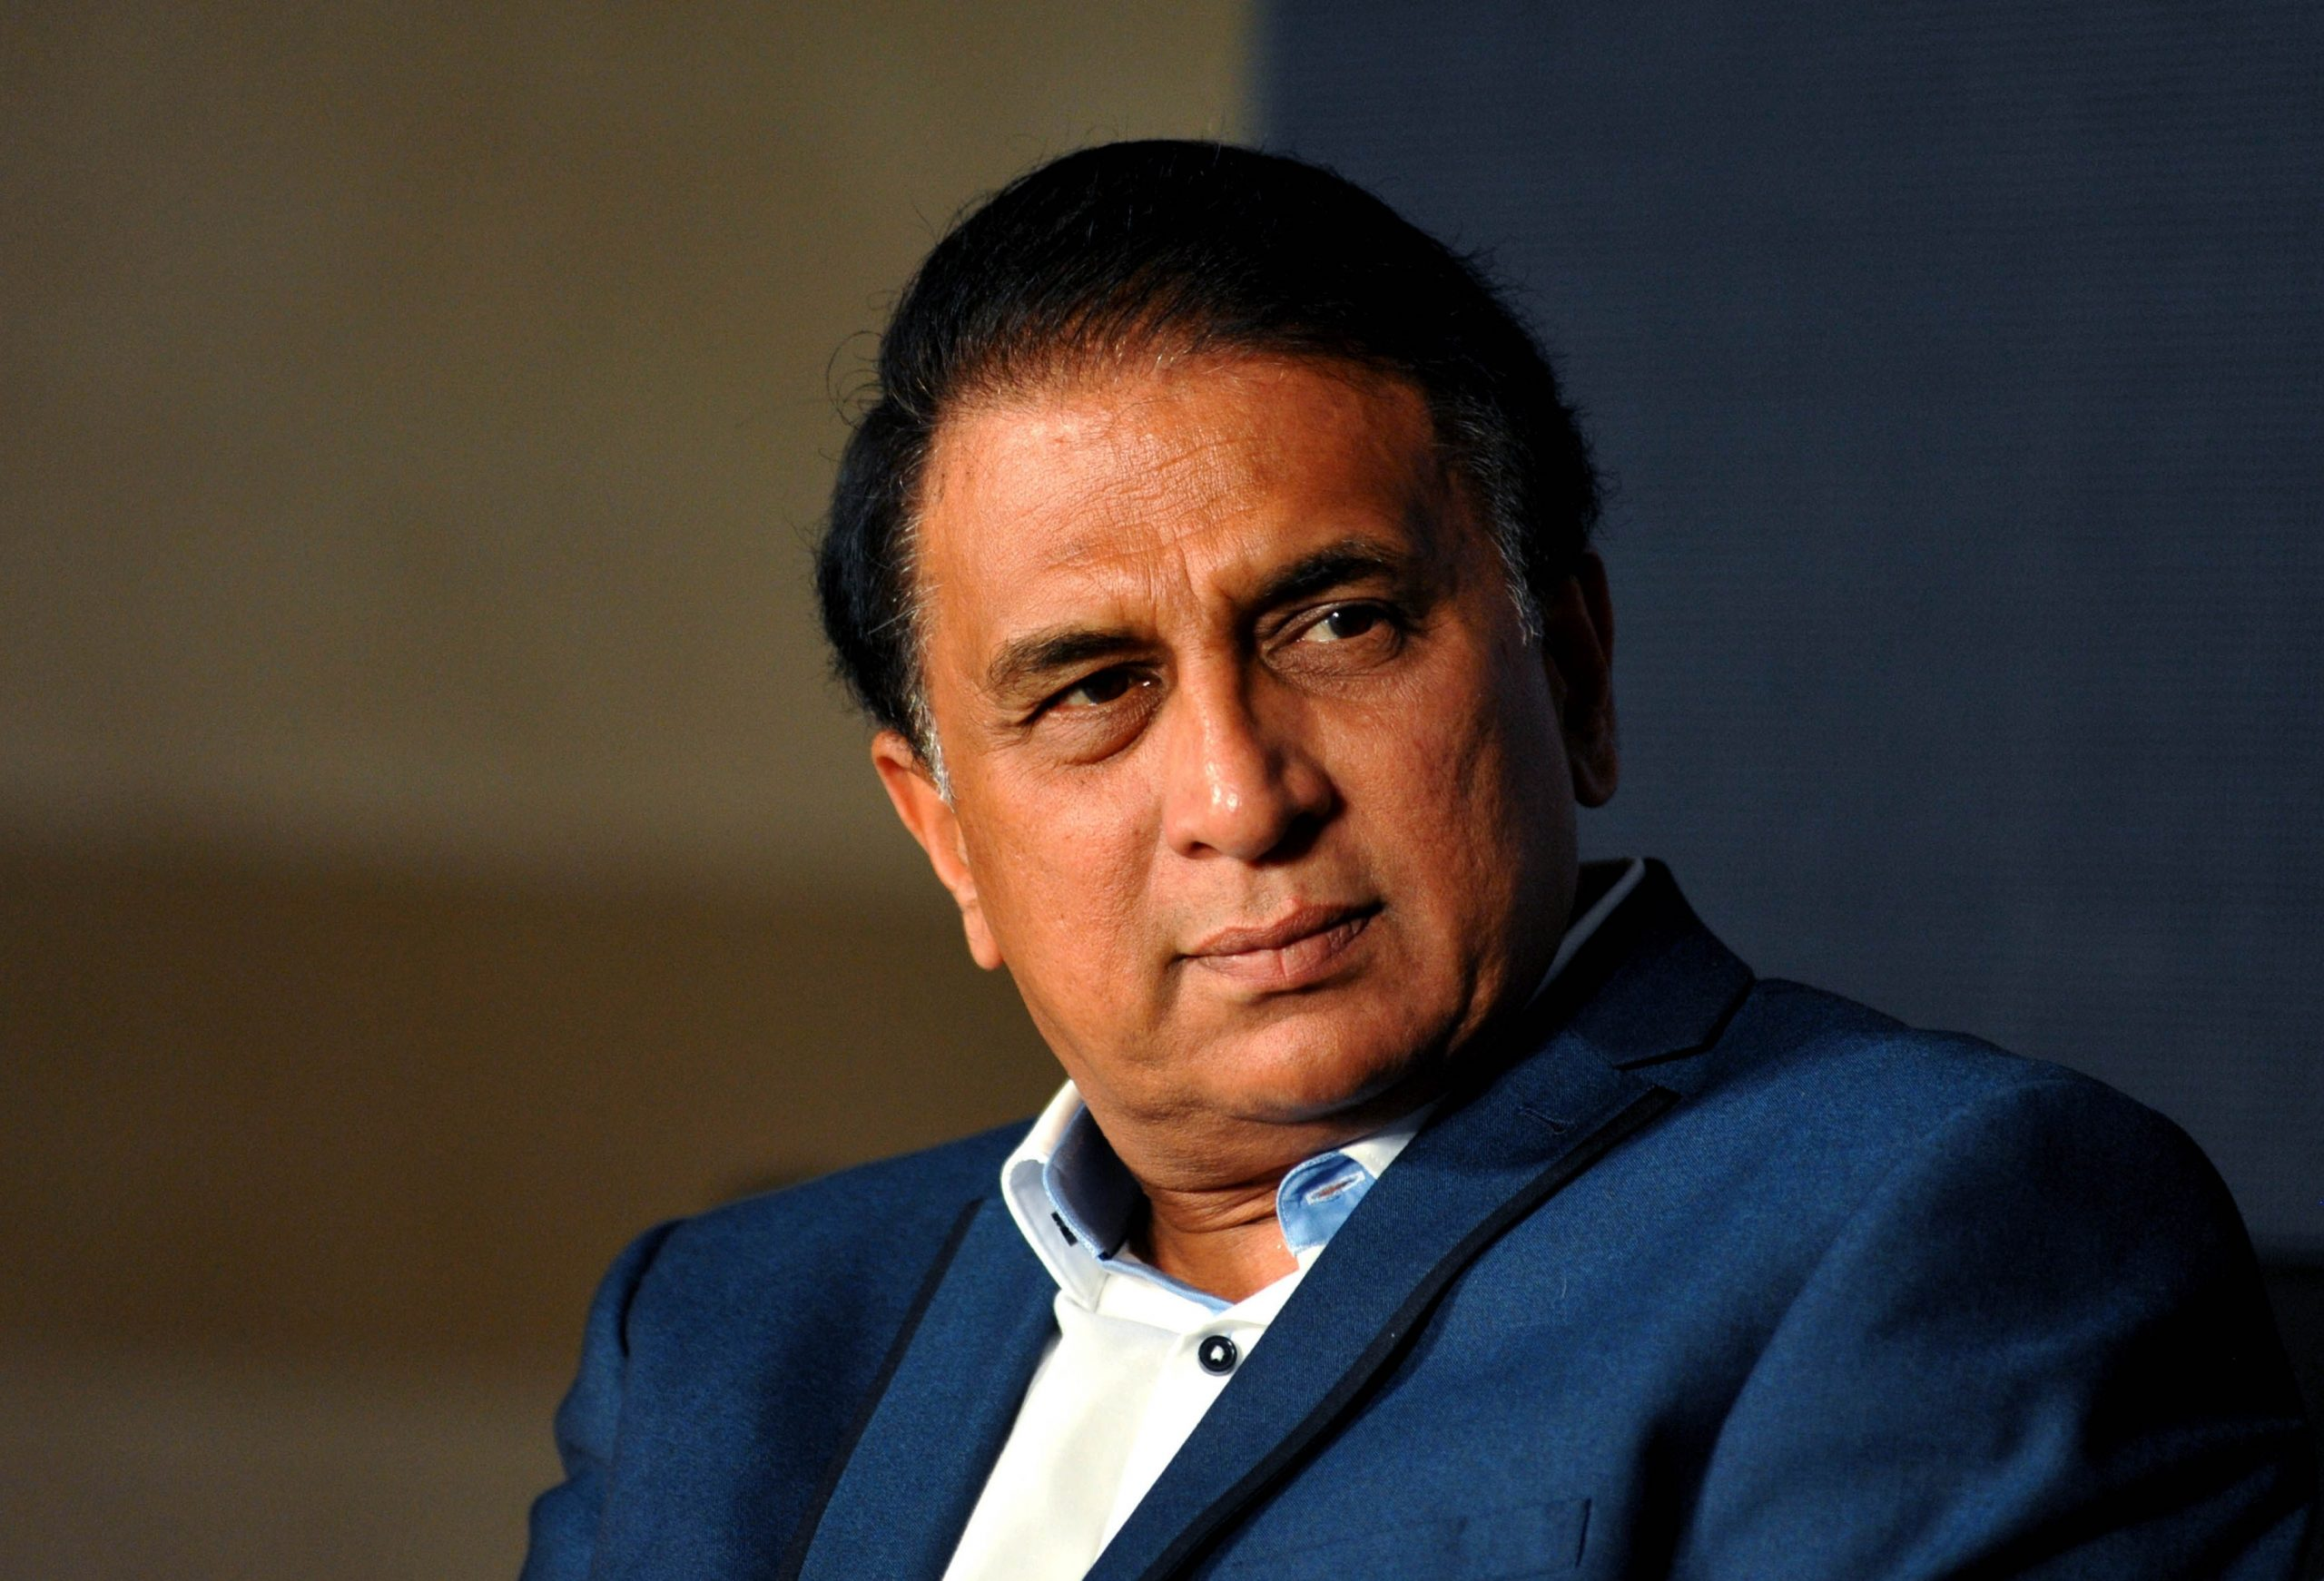 Former Indian cricketer Sunil Gavaskar (STRDEL/AFP via Getty Images)